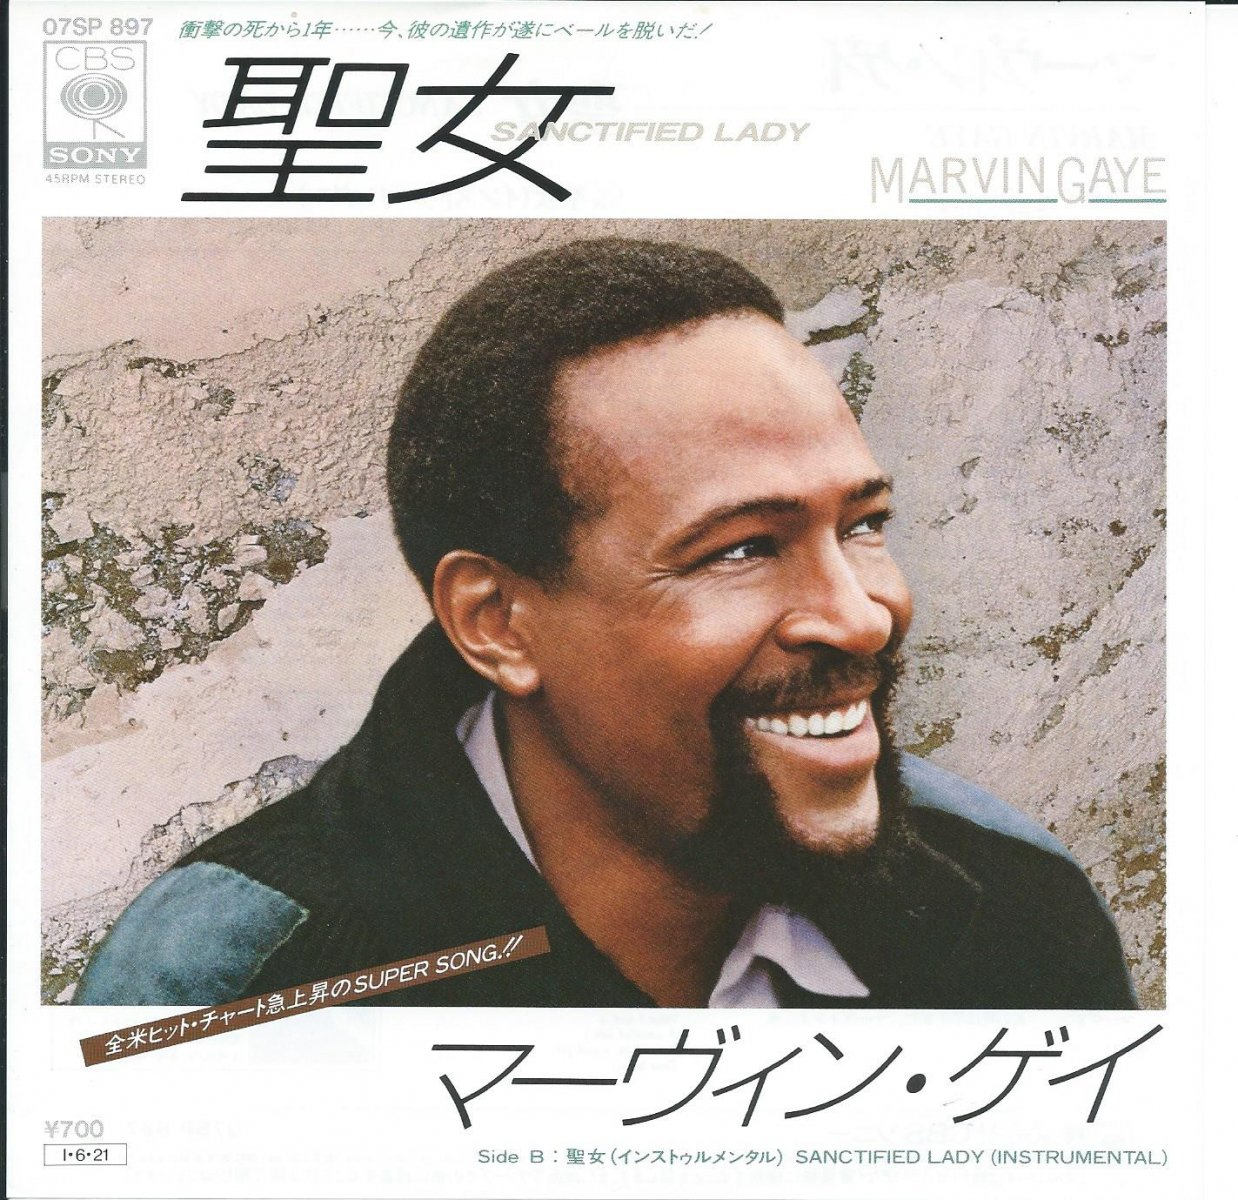 マービン・ゲイ MARVIN GAYE / 聖女 SANCTIFIED LADY / (INSTRUMENTAL) (7